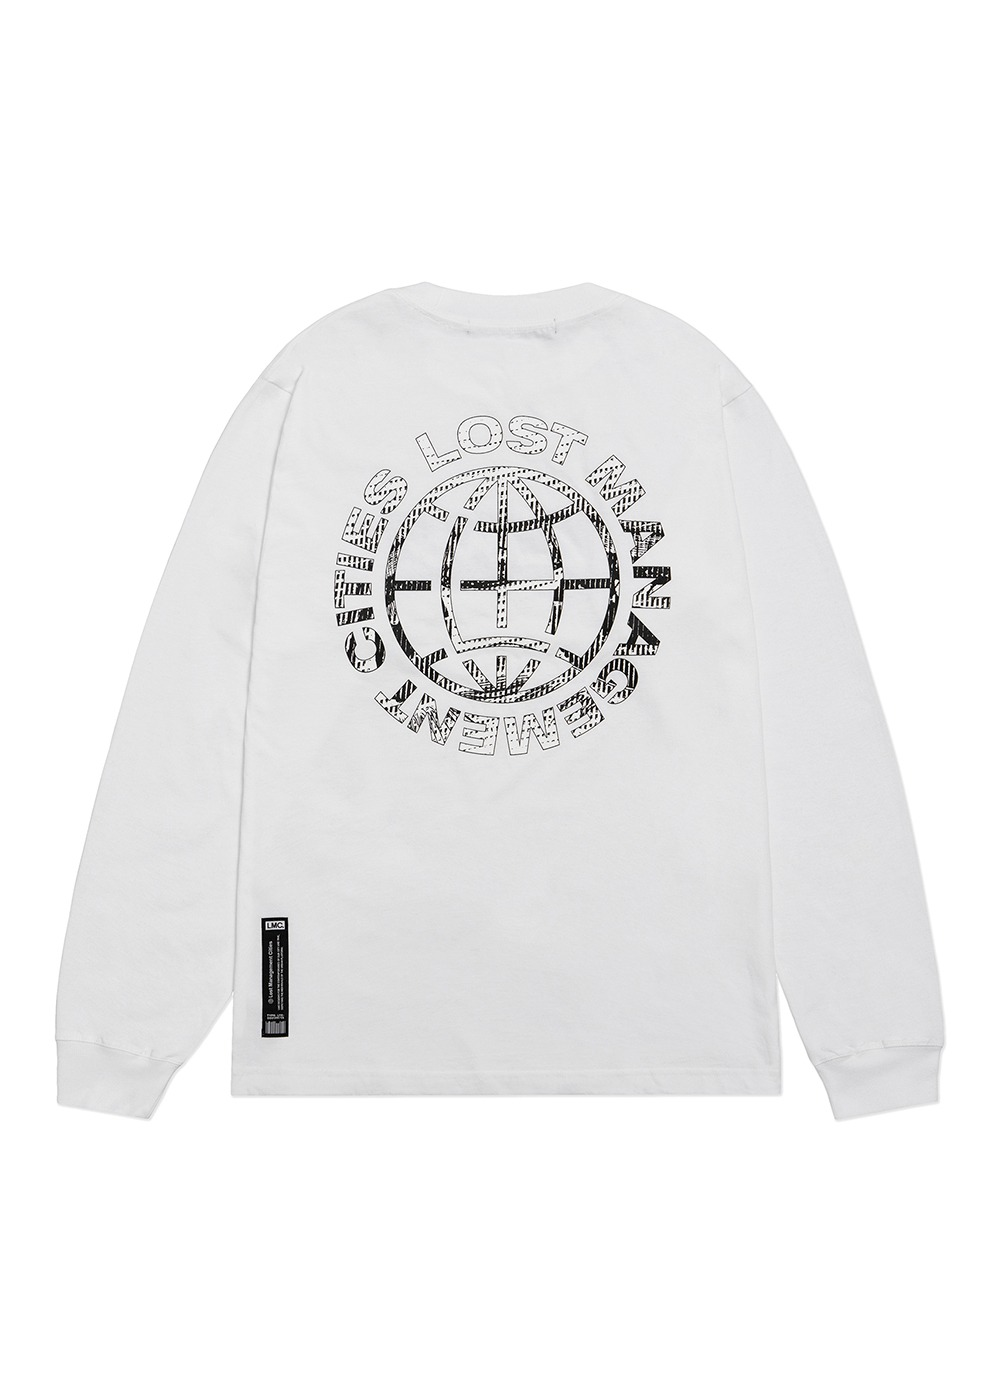 LMC D-NOISE LONG SLV TEE white